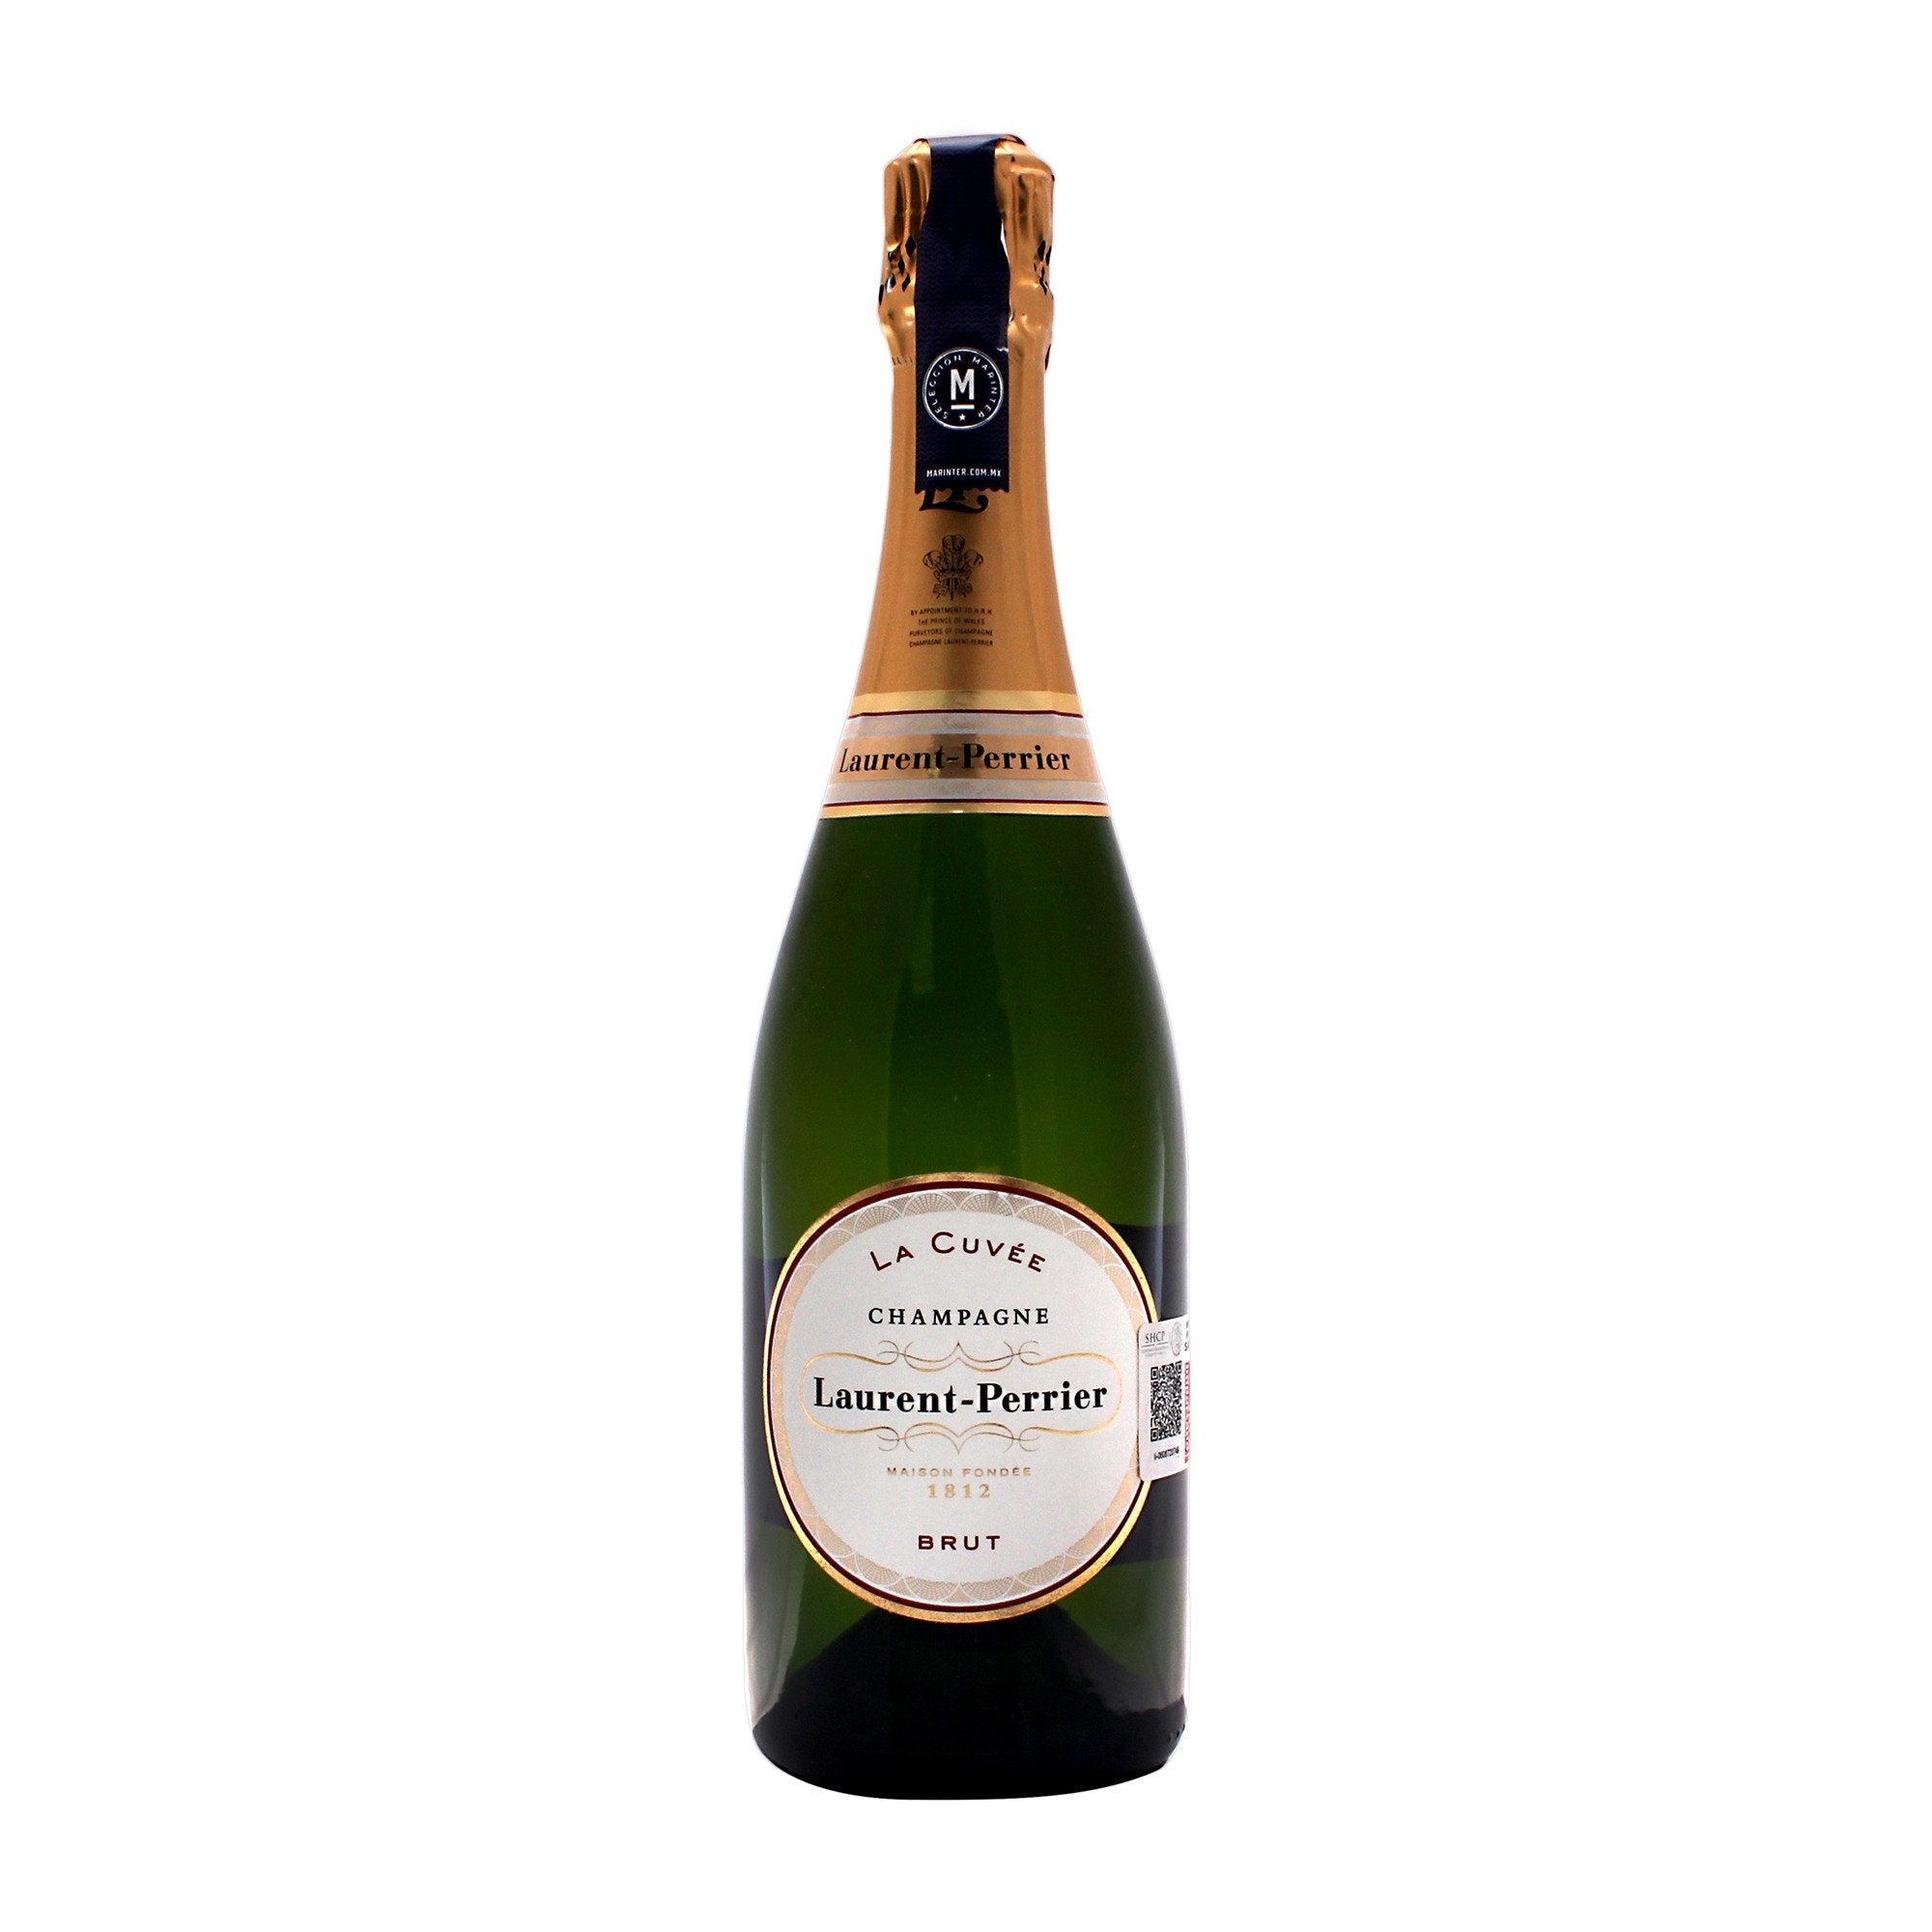 Champagne - Laurent Perrier - Brut Cuve de 750 ml